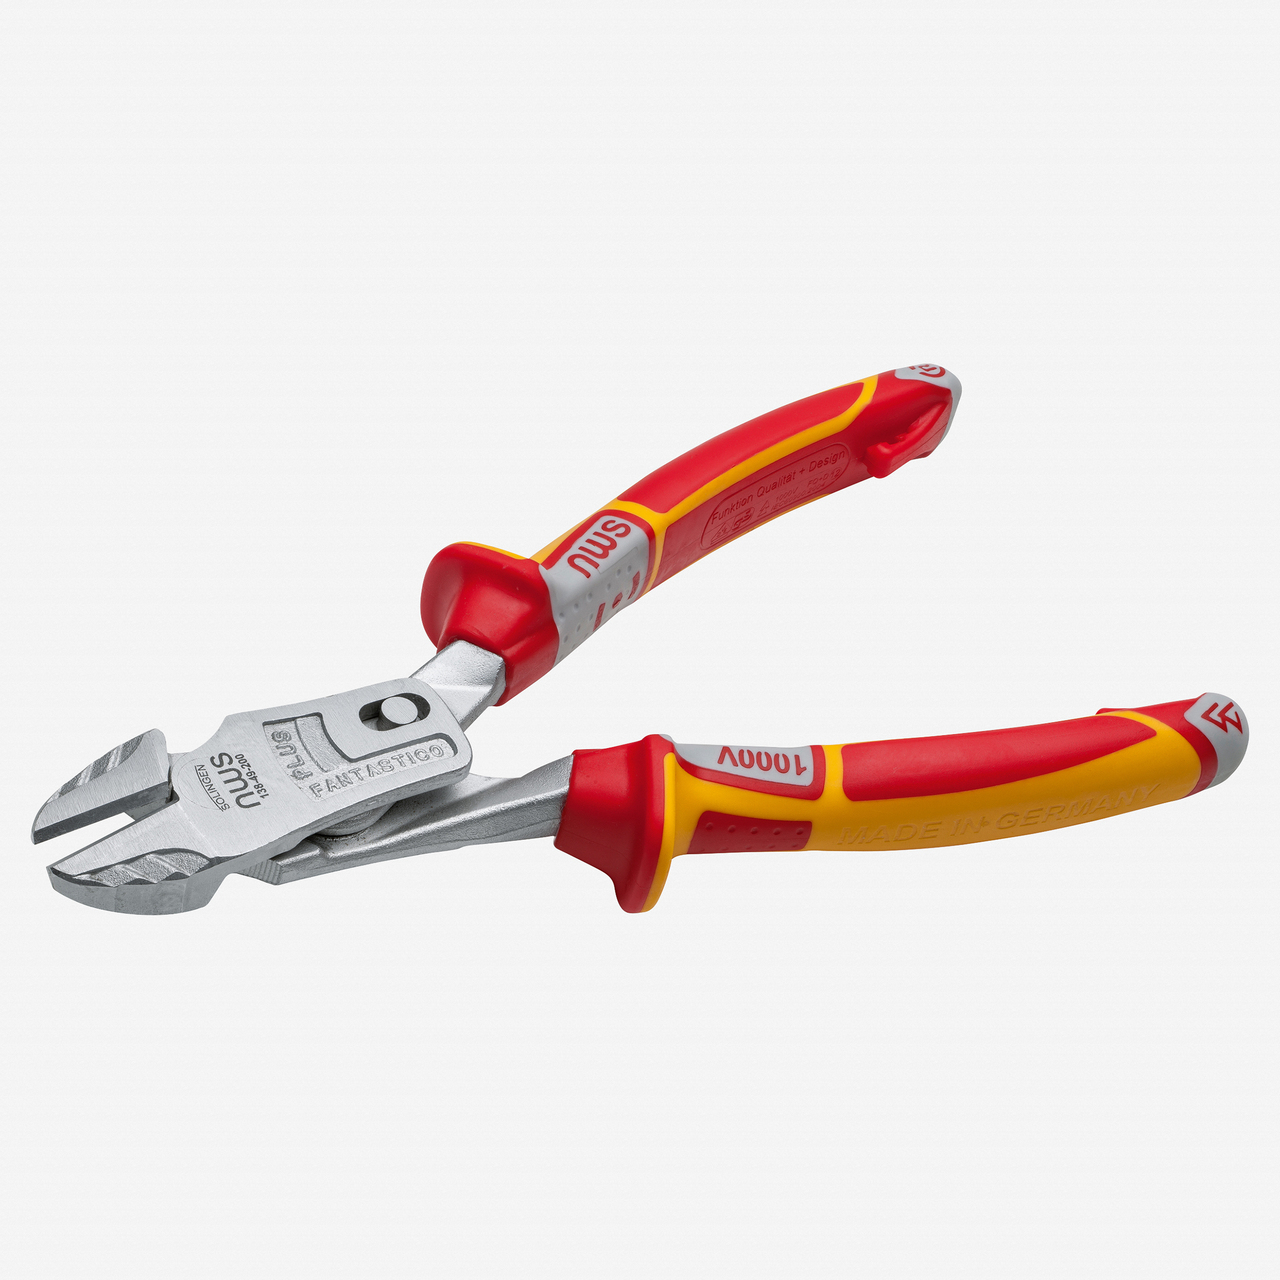 "NWS 138-49-VDE-180 7"" Heavy Duty Lever Side Cutter FantasticoPlus VDE - Matte Chromium - SoftGripp - KC Tool"